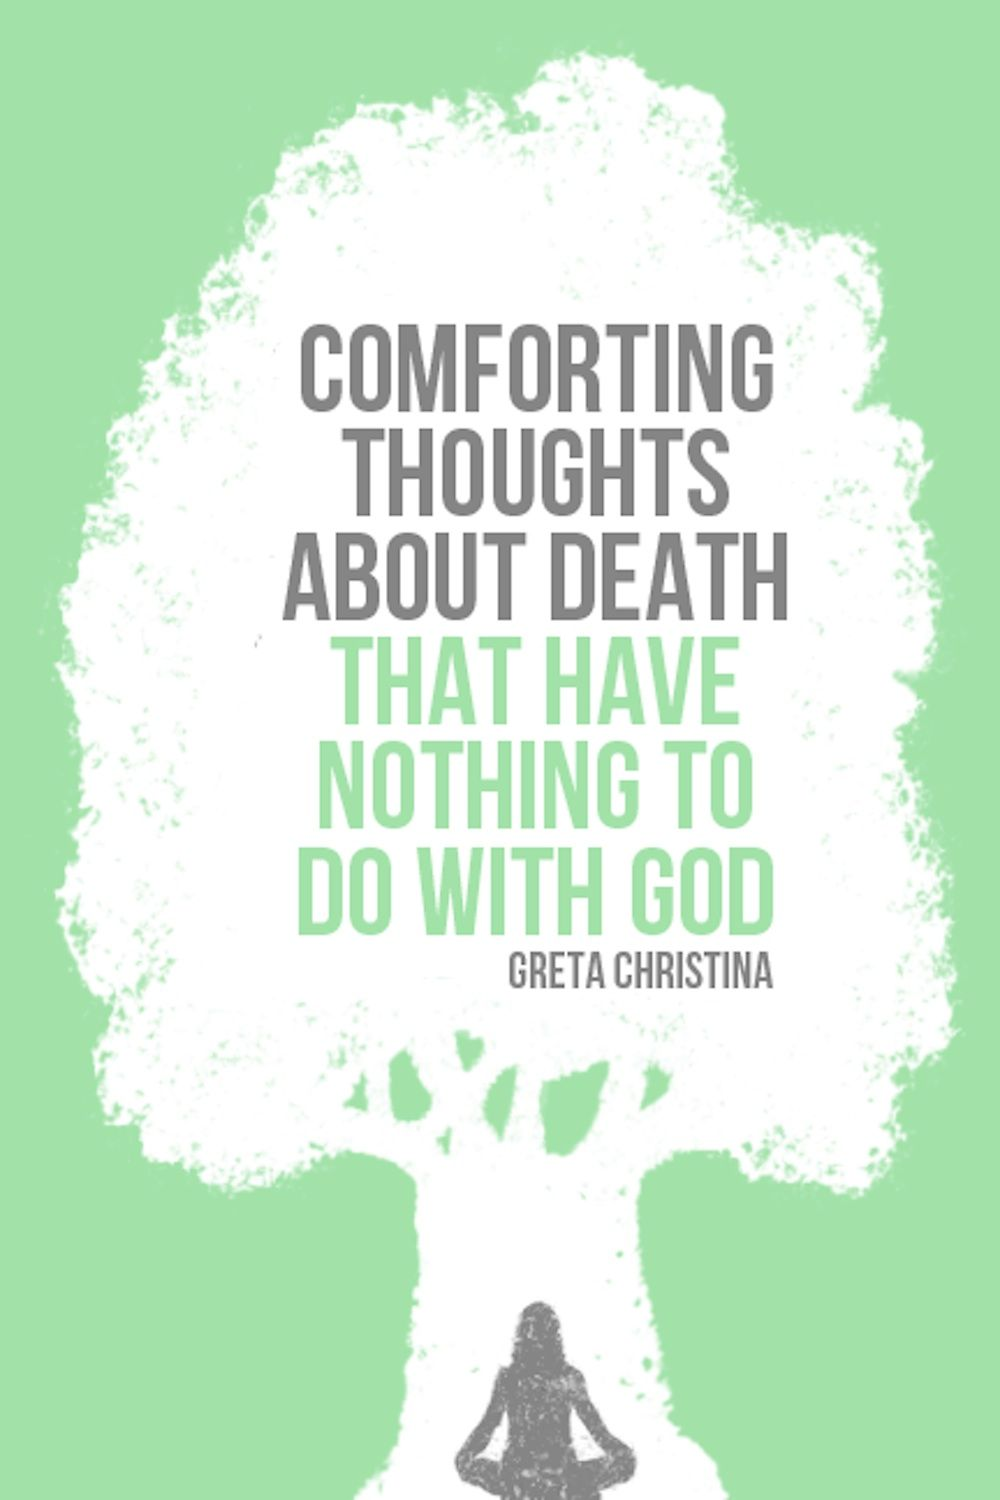 Comforting Thoughts About Death That Have Nothing to Do with God - Greta Christina